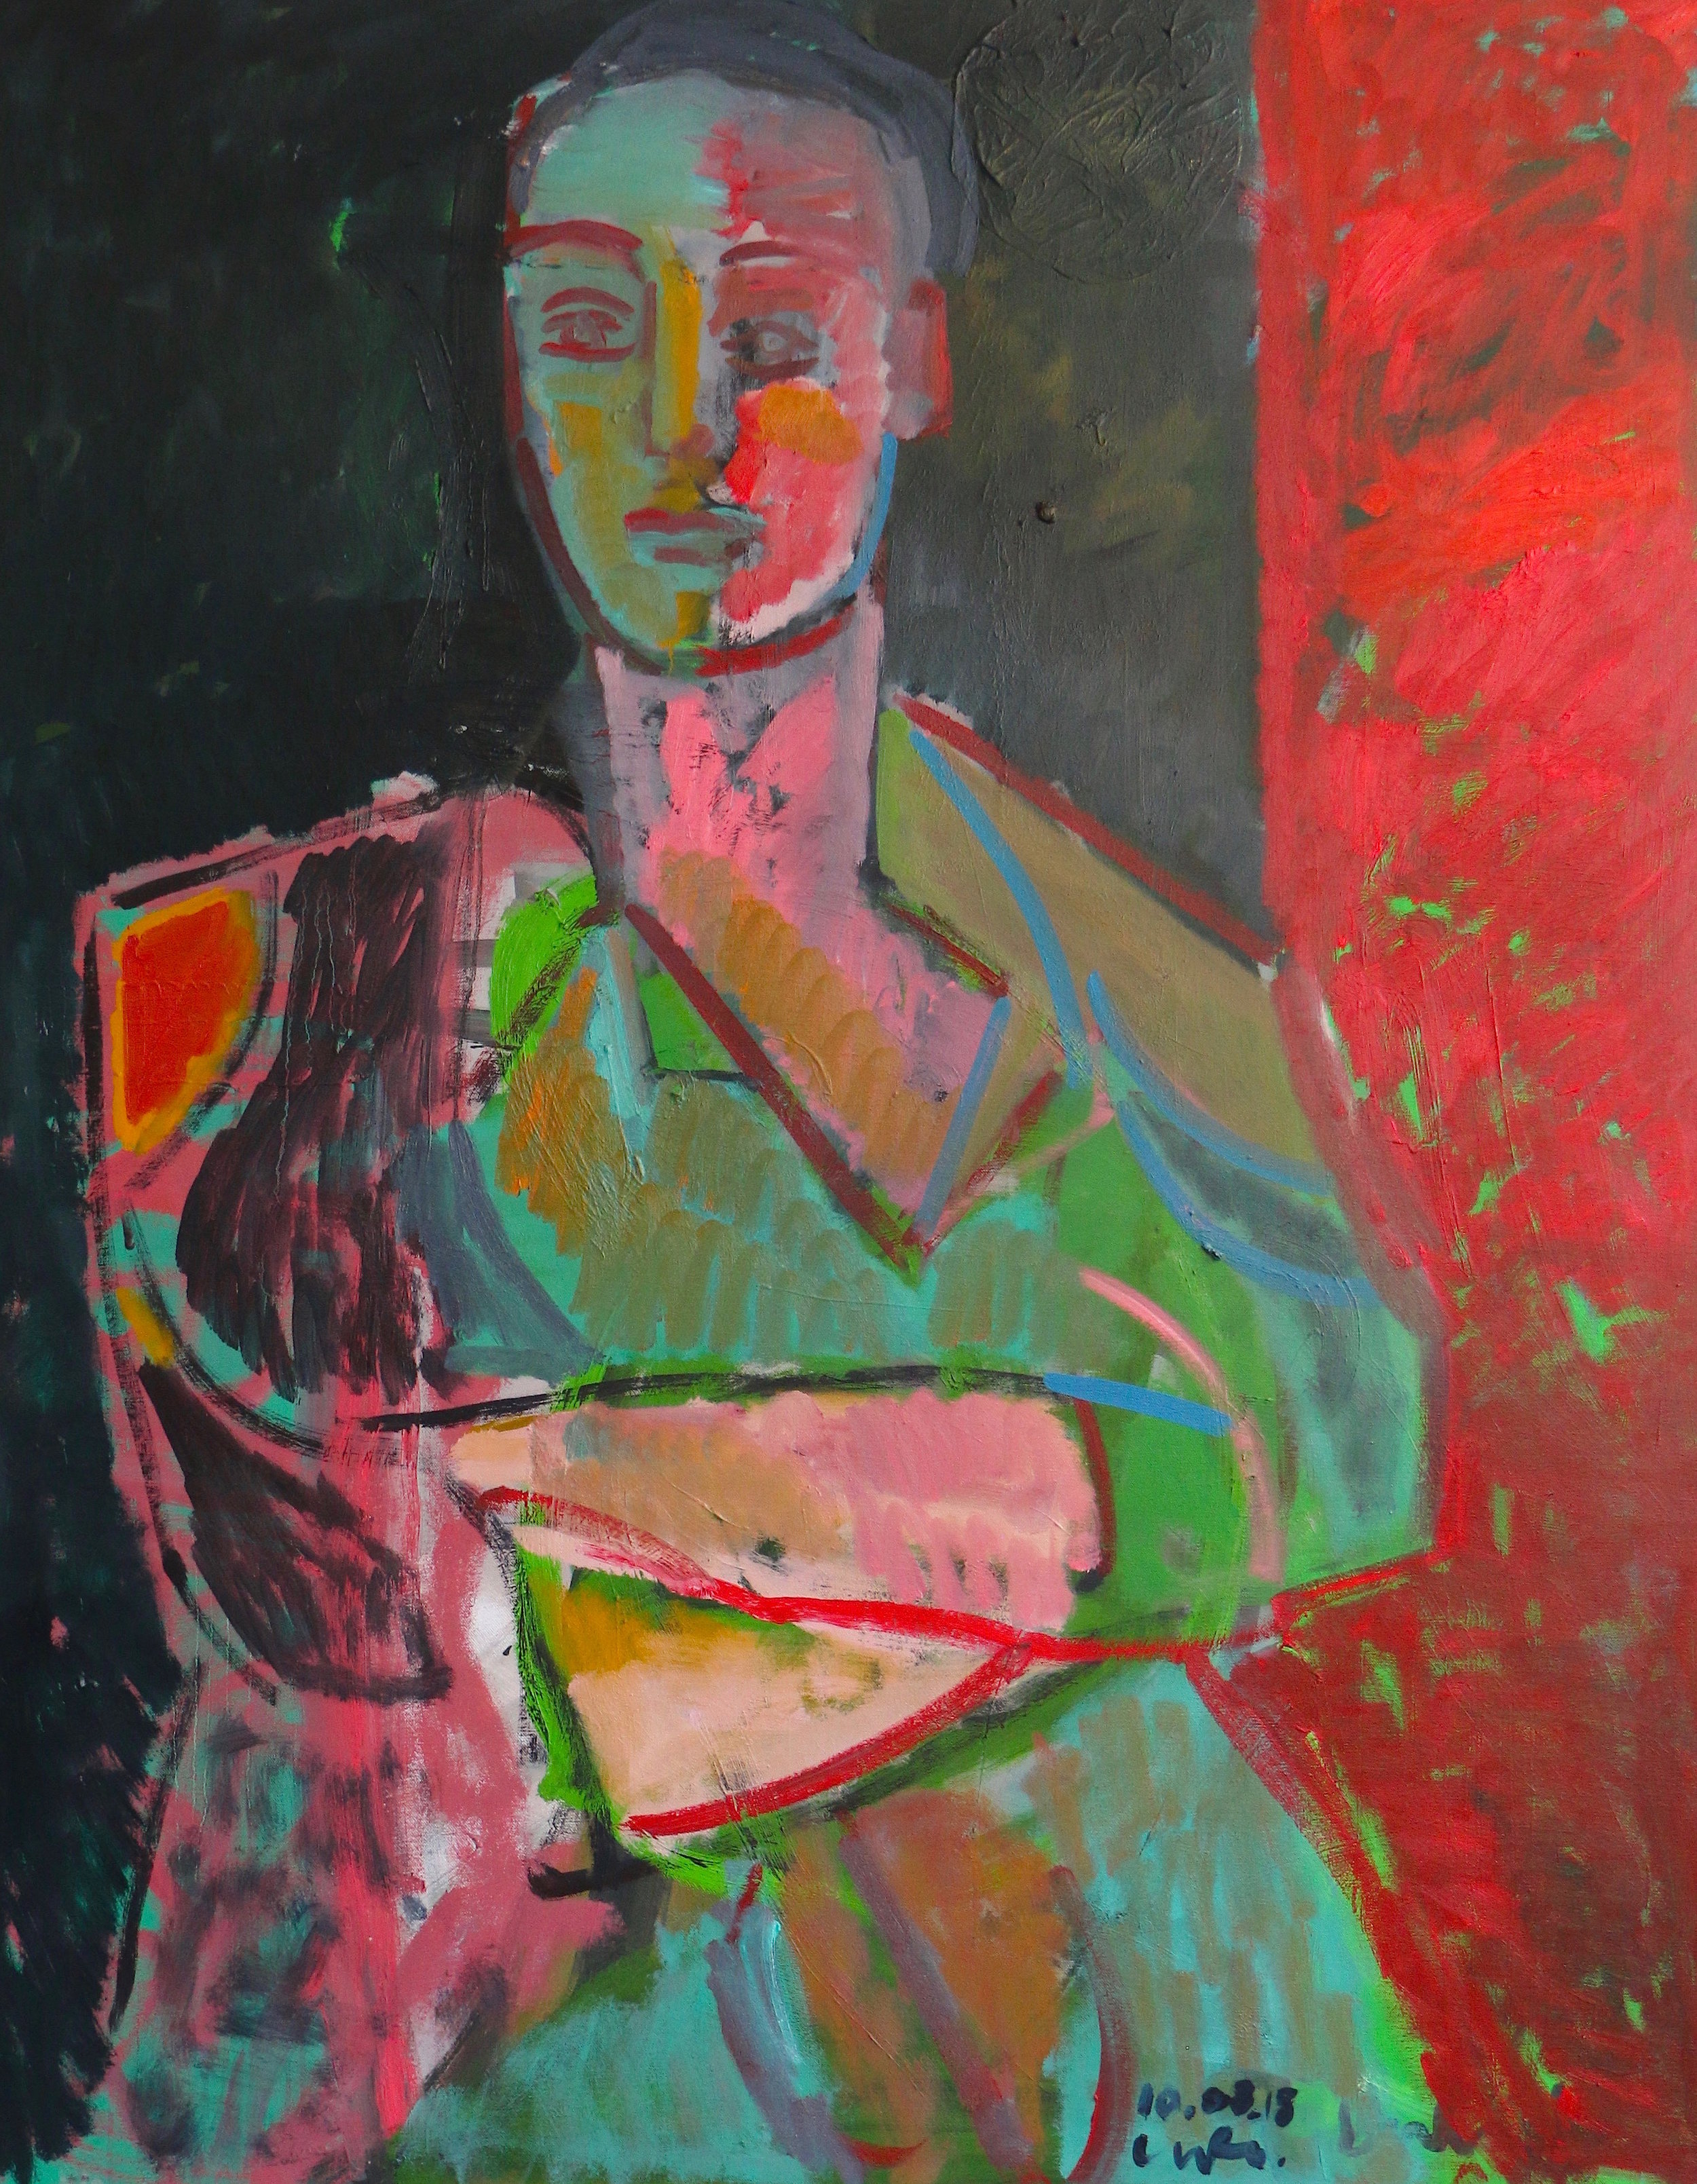 Title: Tess in her Danish Dress  Size: 142 x 102 cm  Medium: Oil on canvas  Price: SOLD